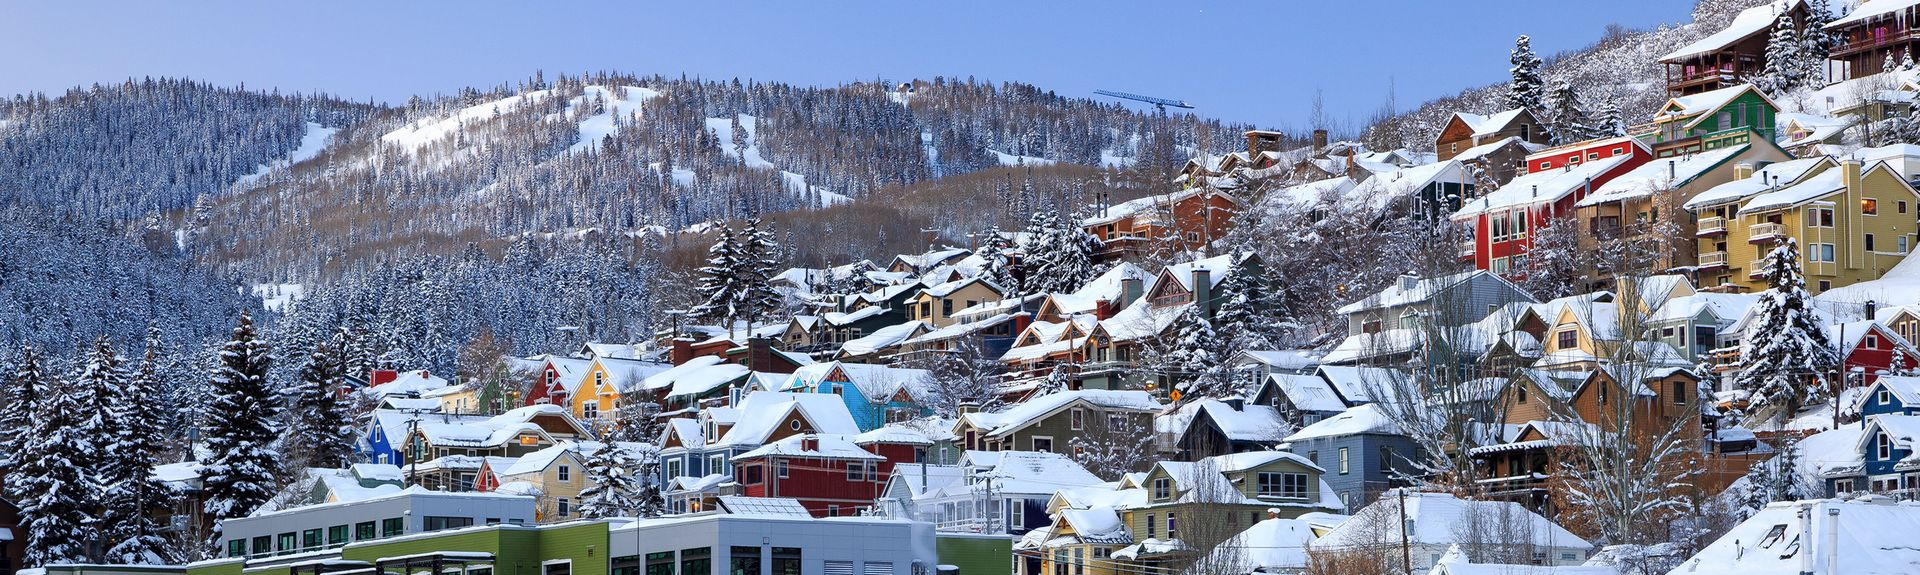 Downtown Park City, Park City, Utah, United States of America